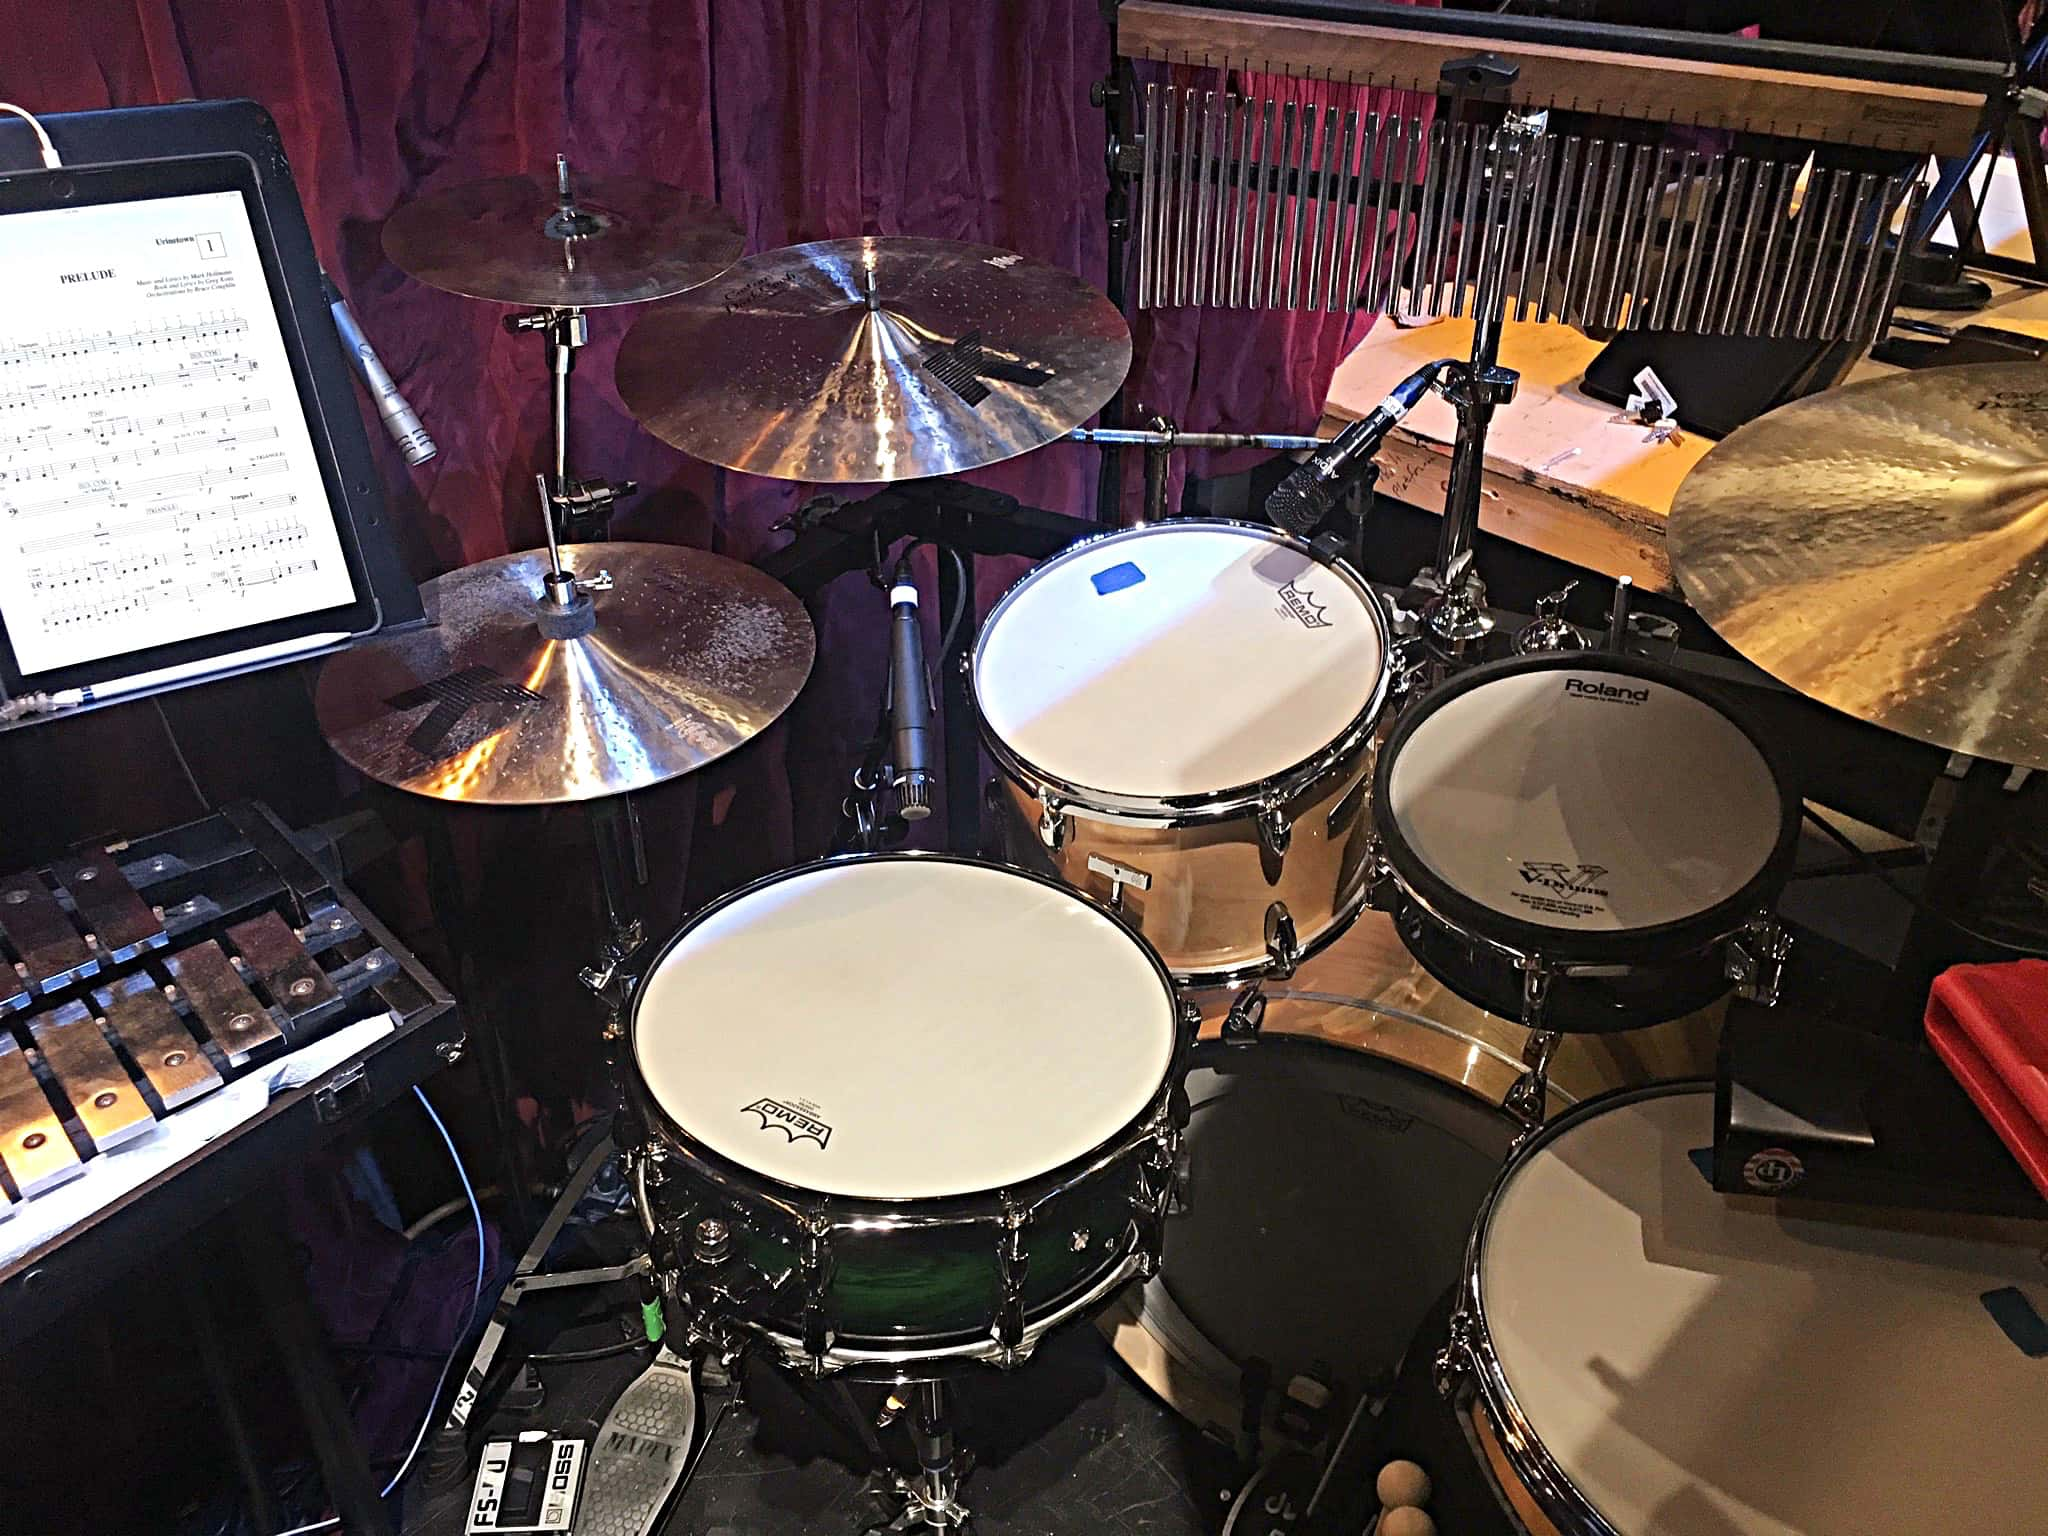 Christopher Roberts' setup for Urinetown at Dartmouth College in Hanover, New Hampshire.